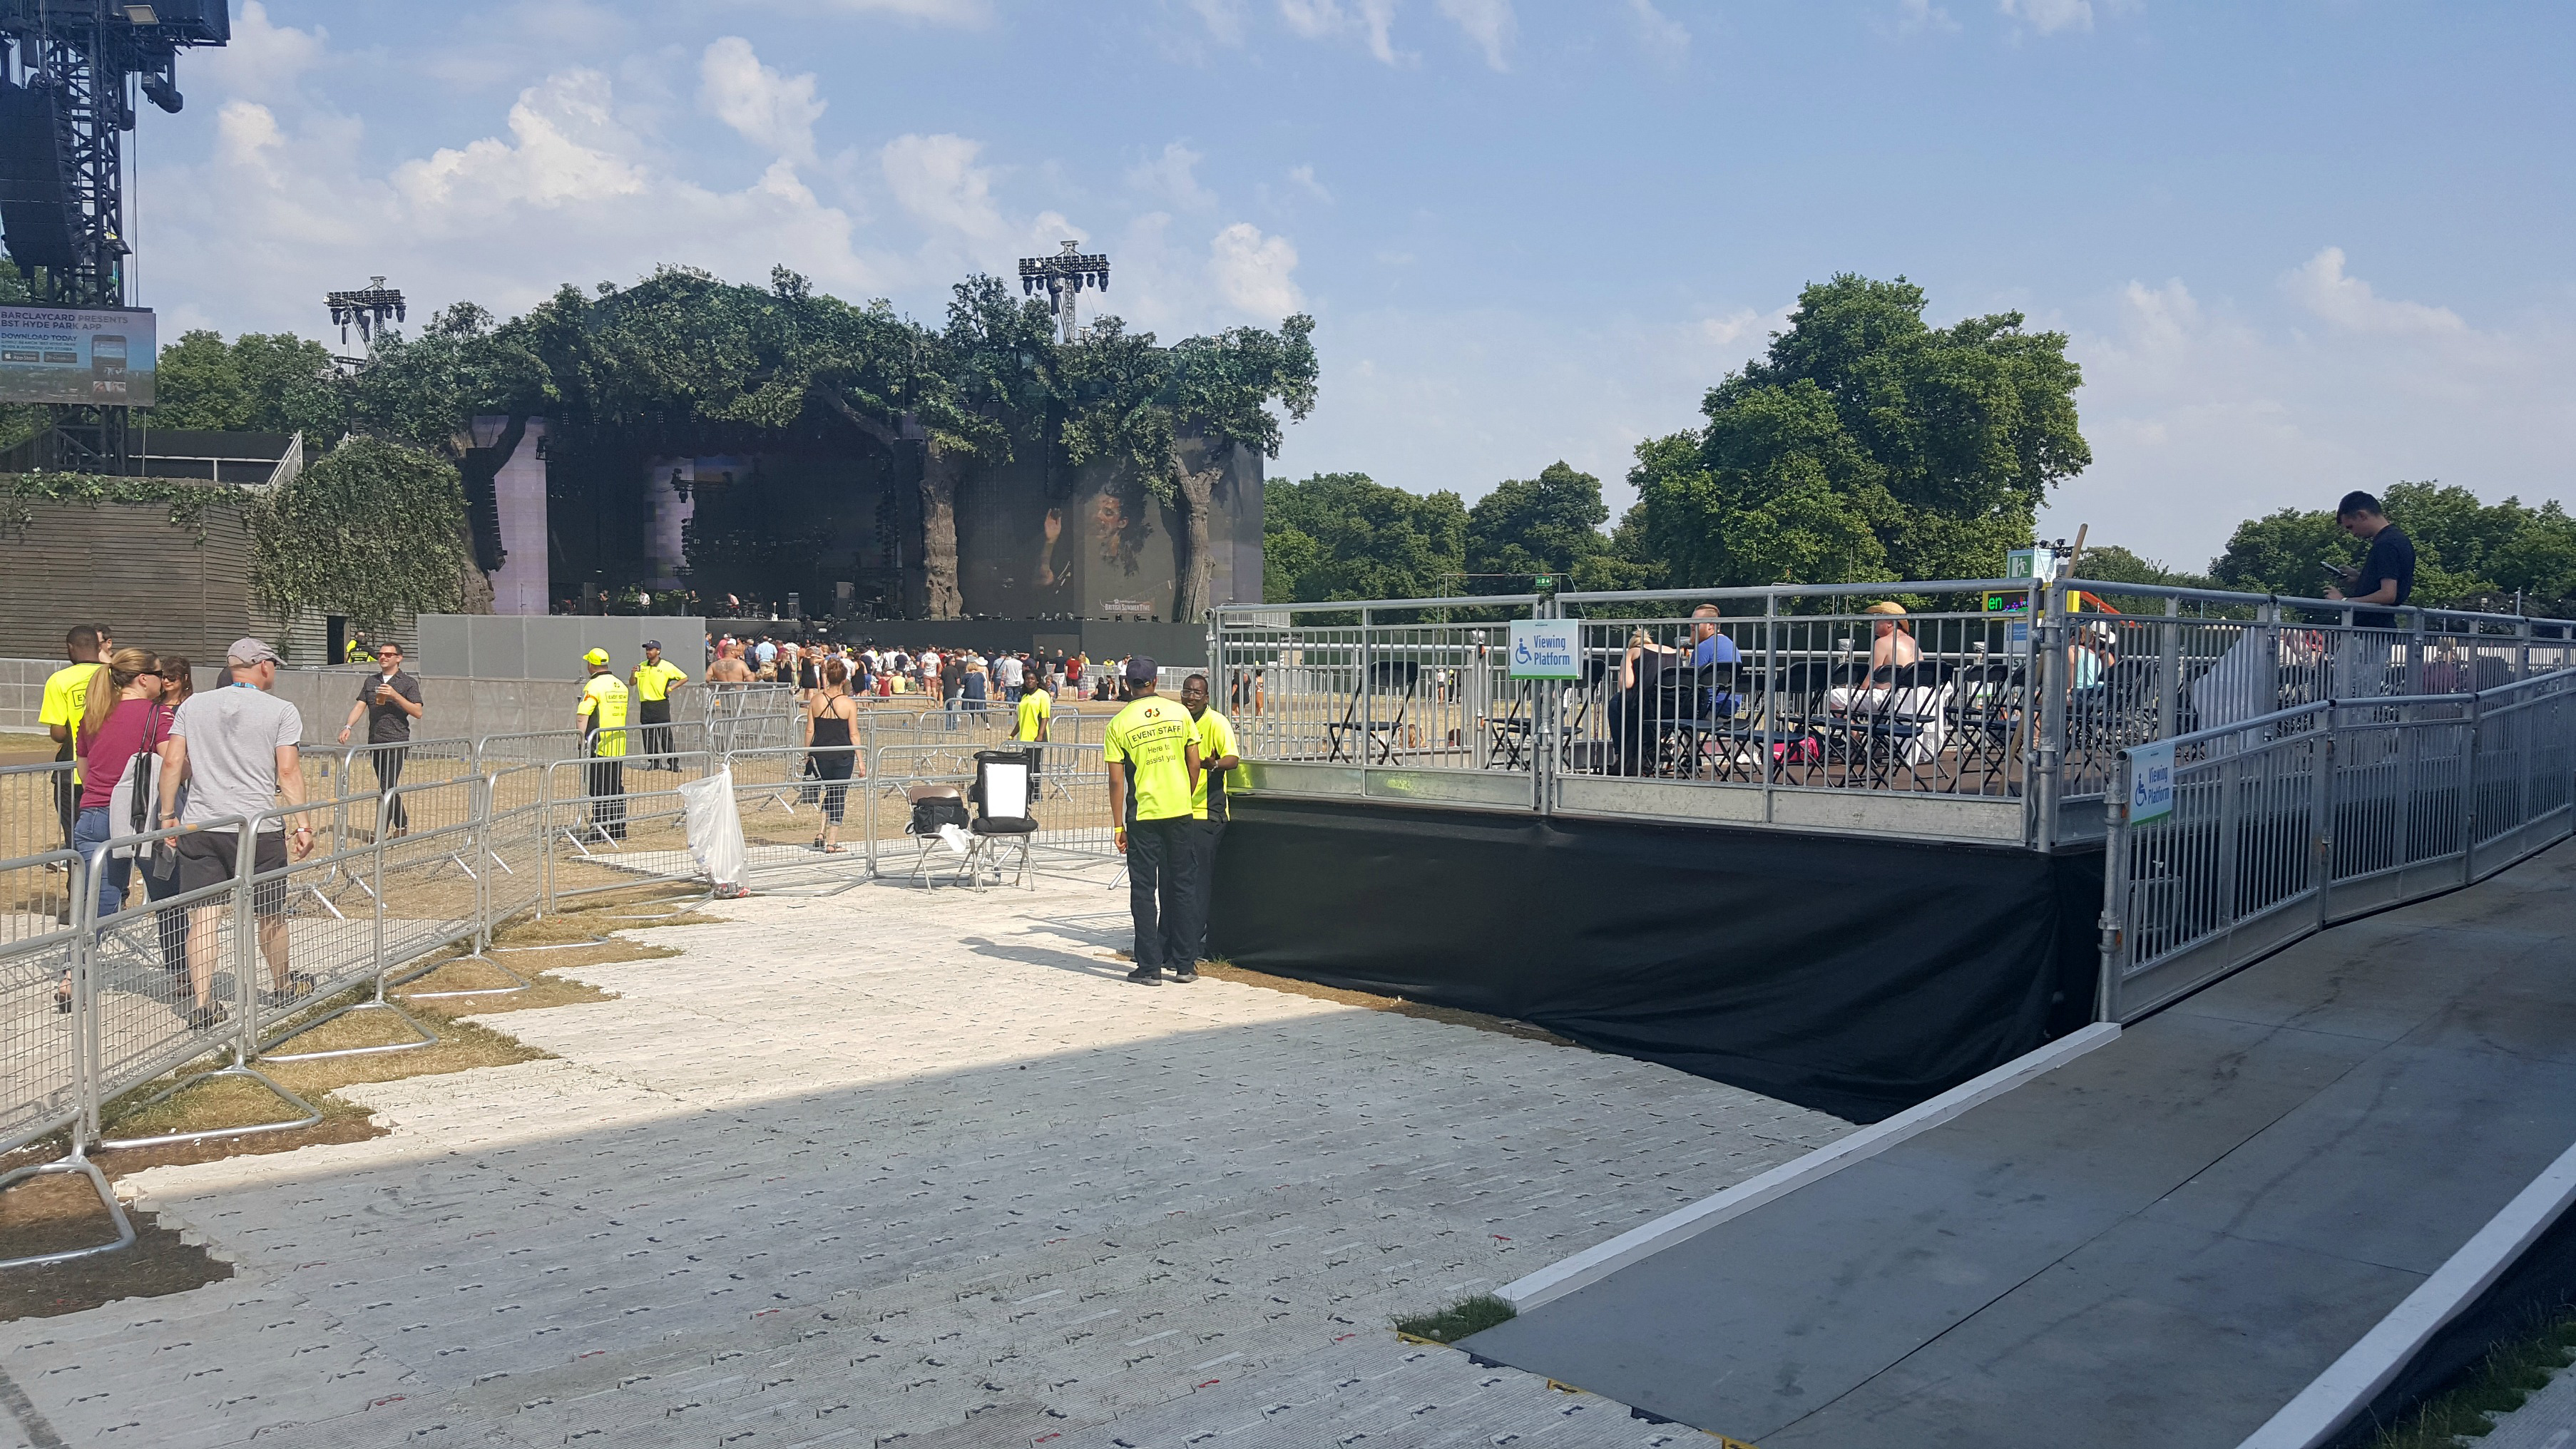 BST Hyde Park viewing platform The Great Oak Stage